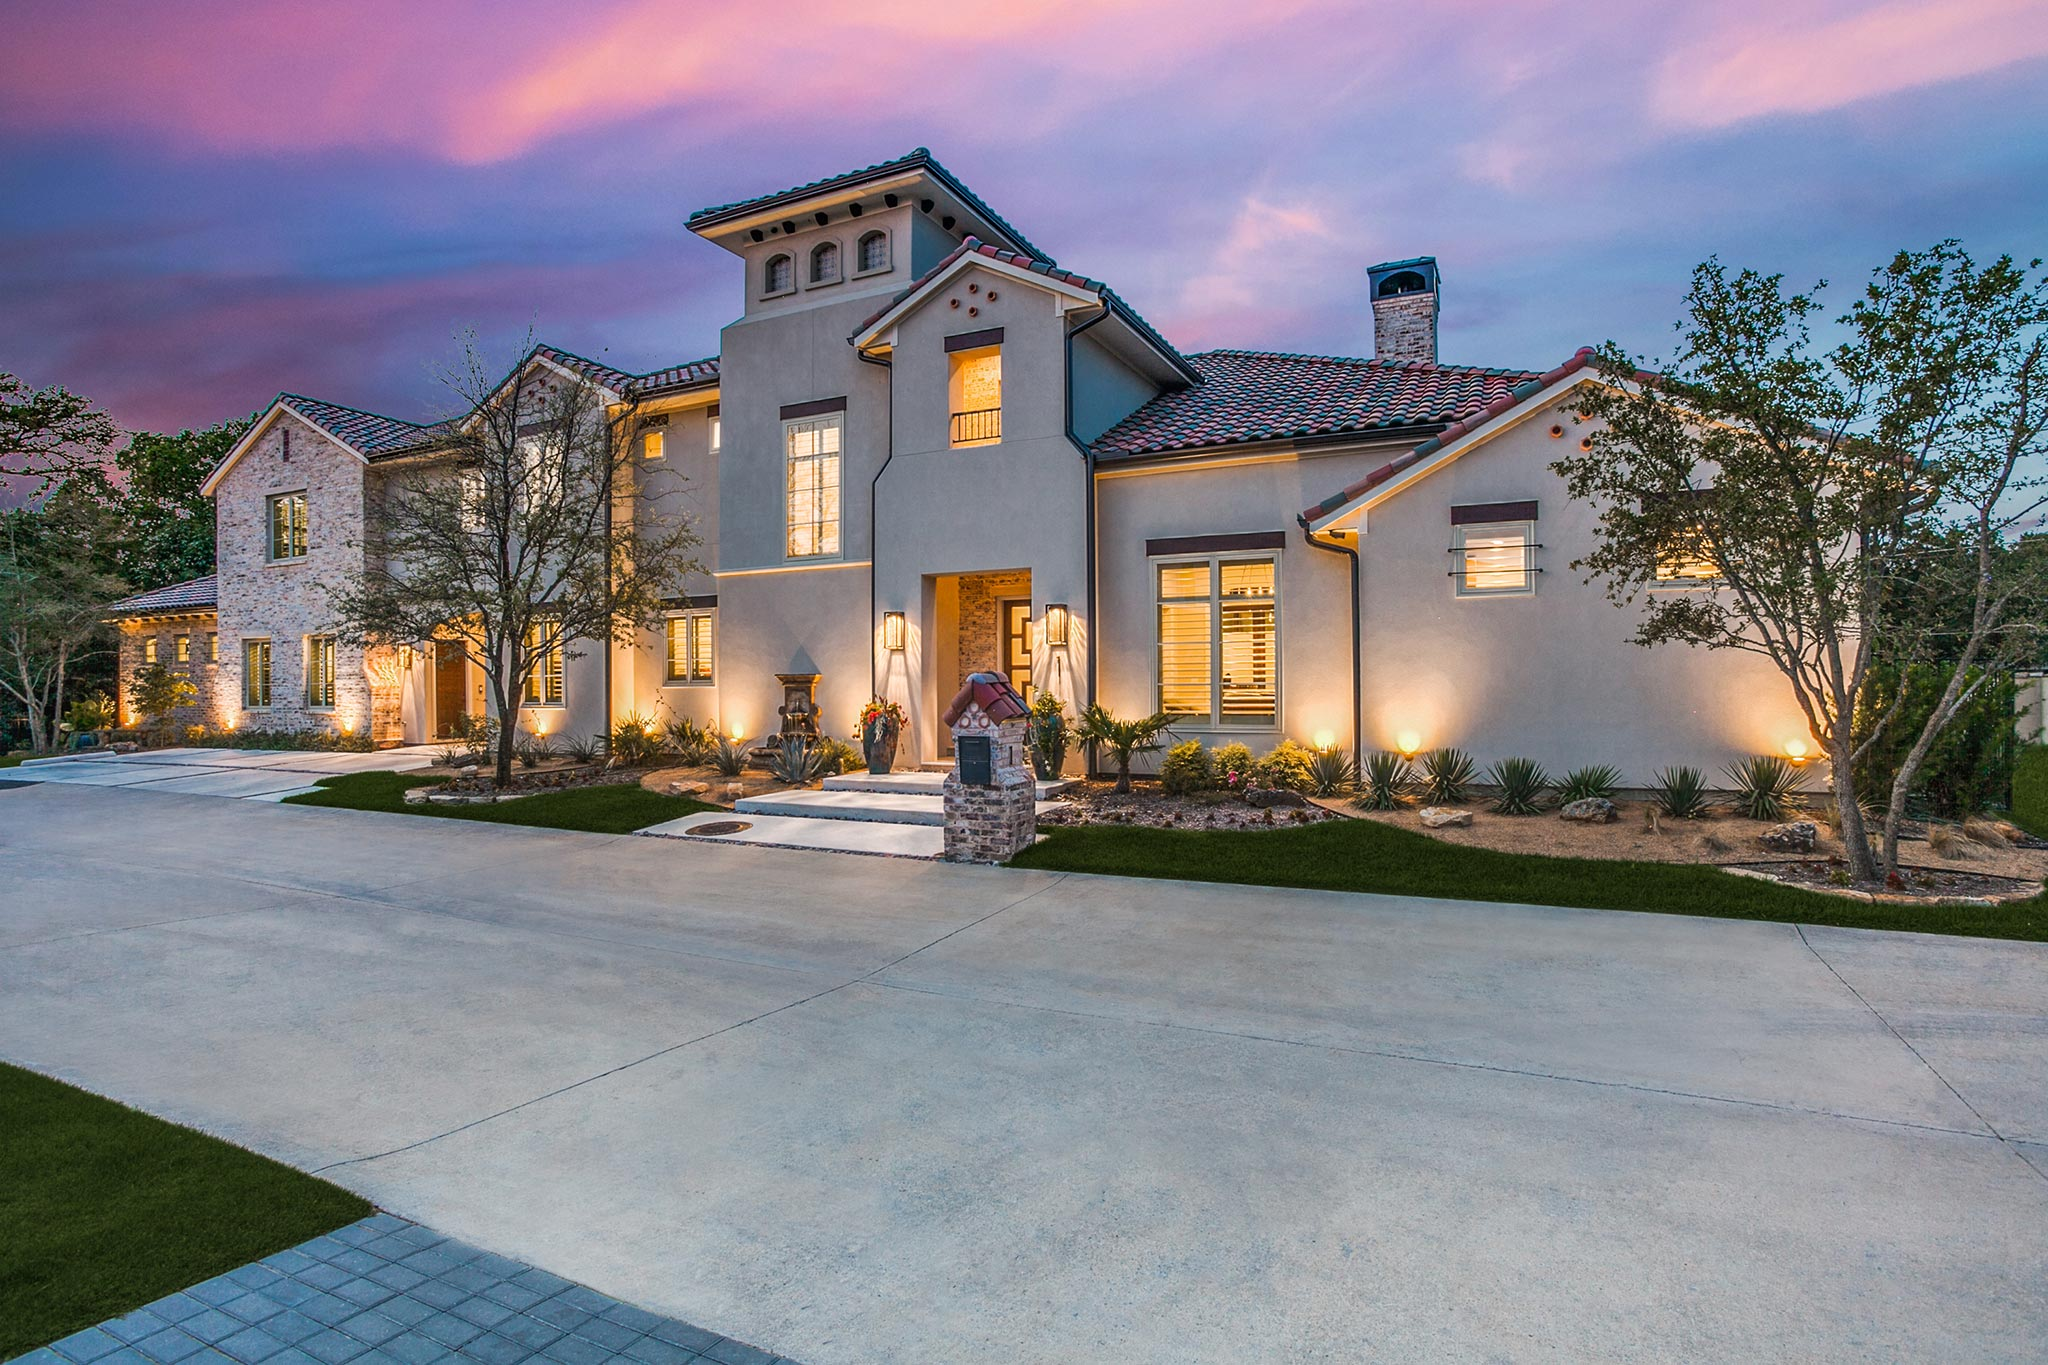 DESCO FINE HOMES: New Custom Home at 1 Bella Porta Place in Davinci Estates in North Dallas, TX